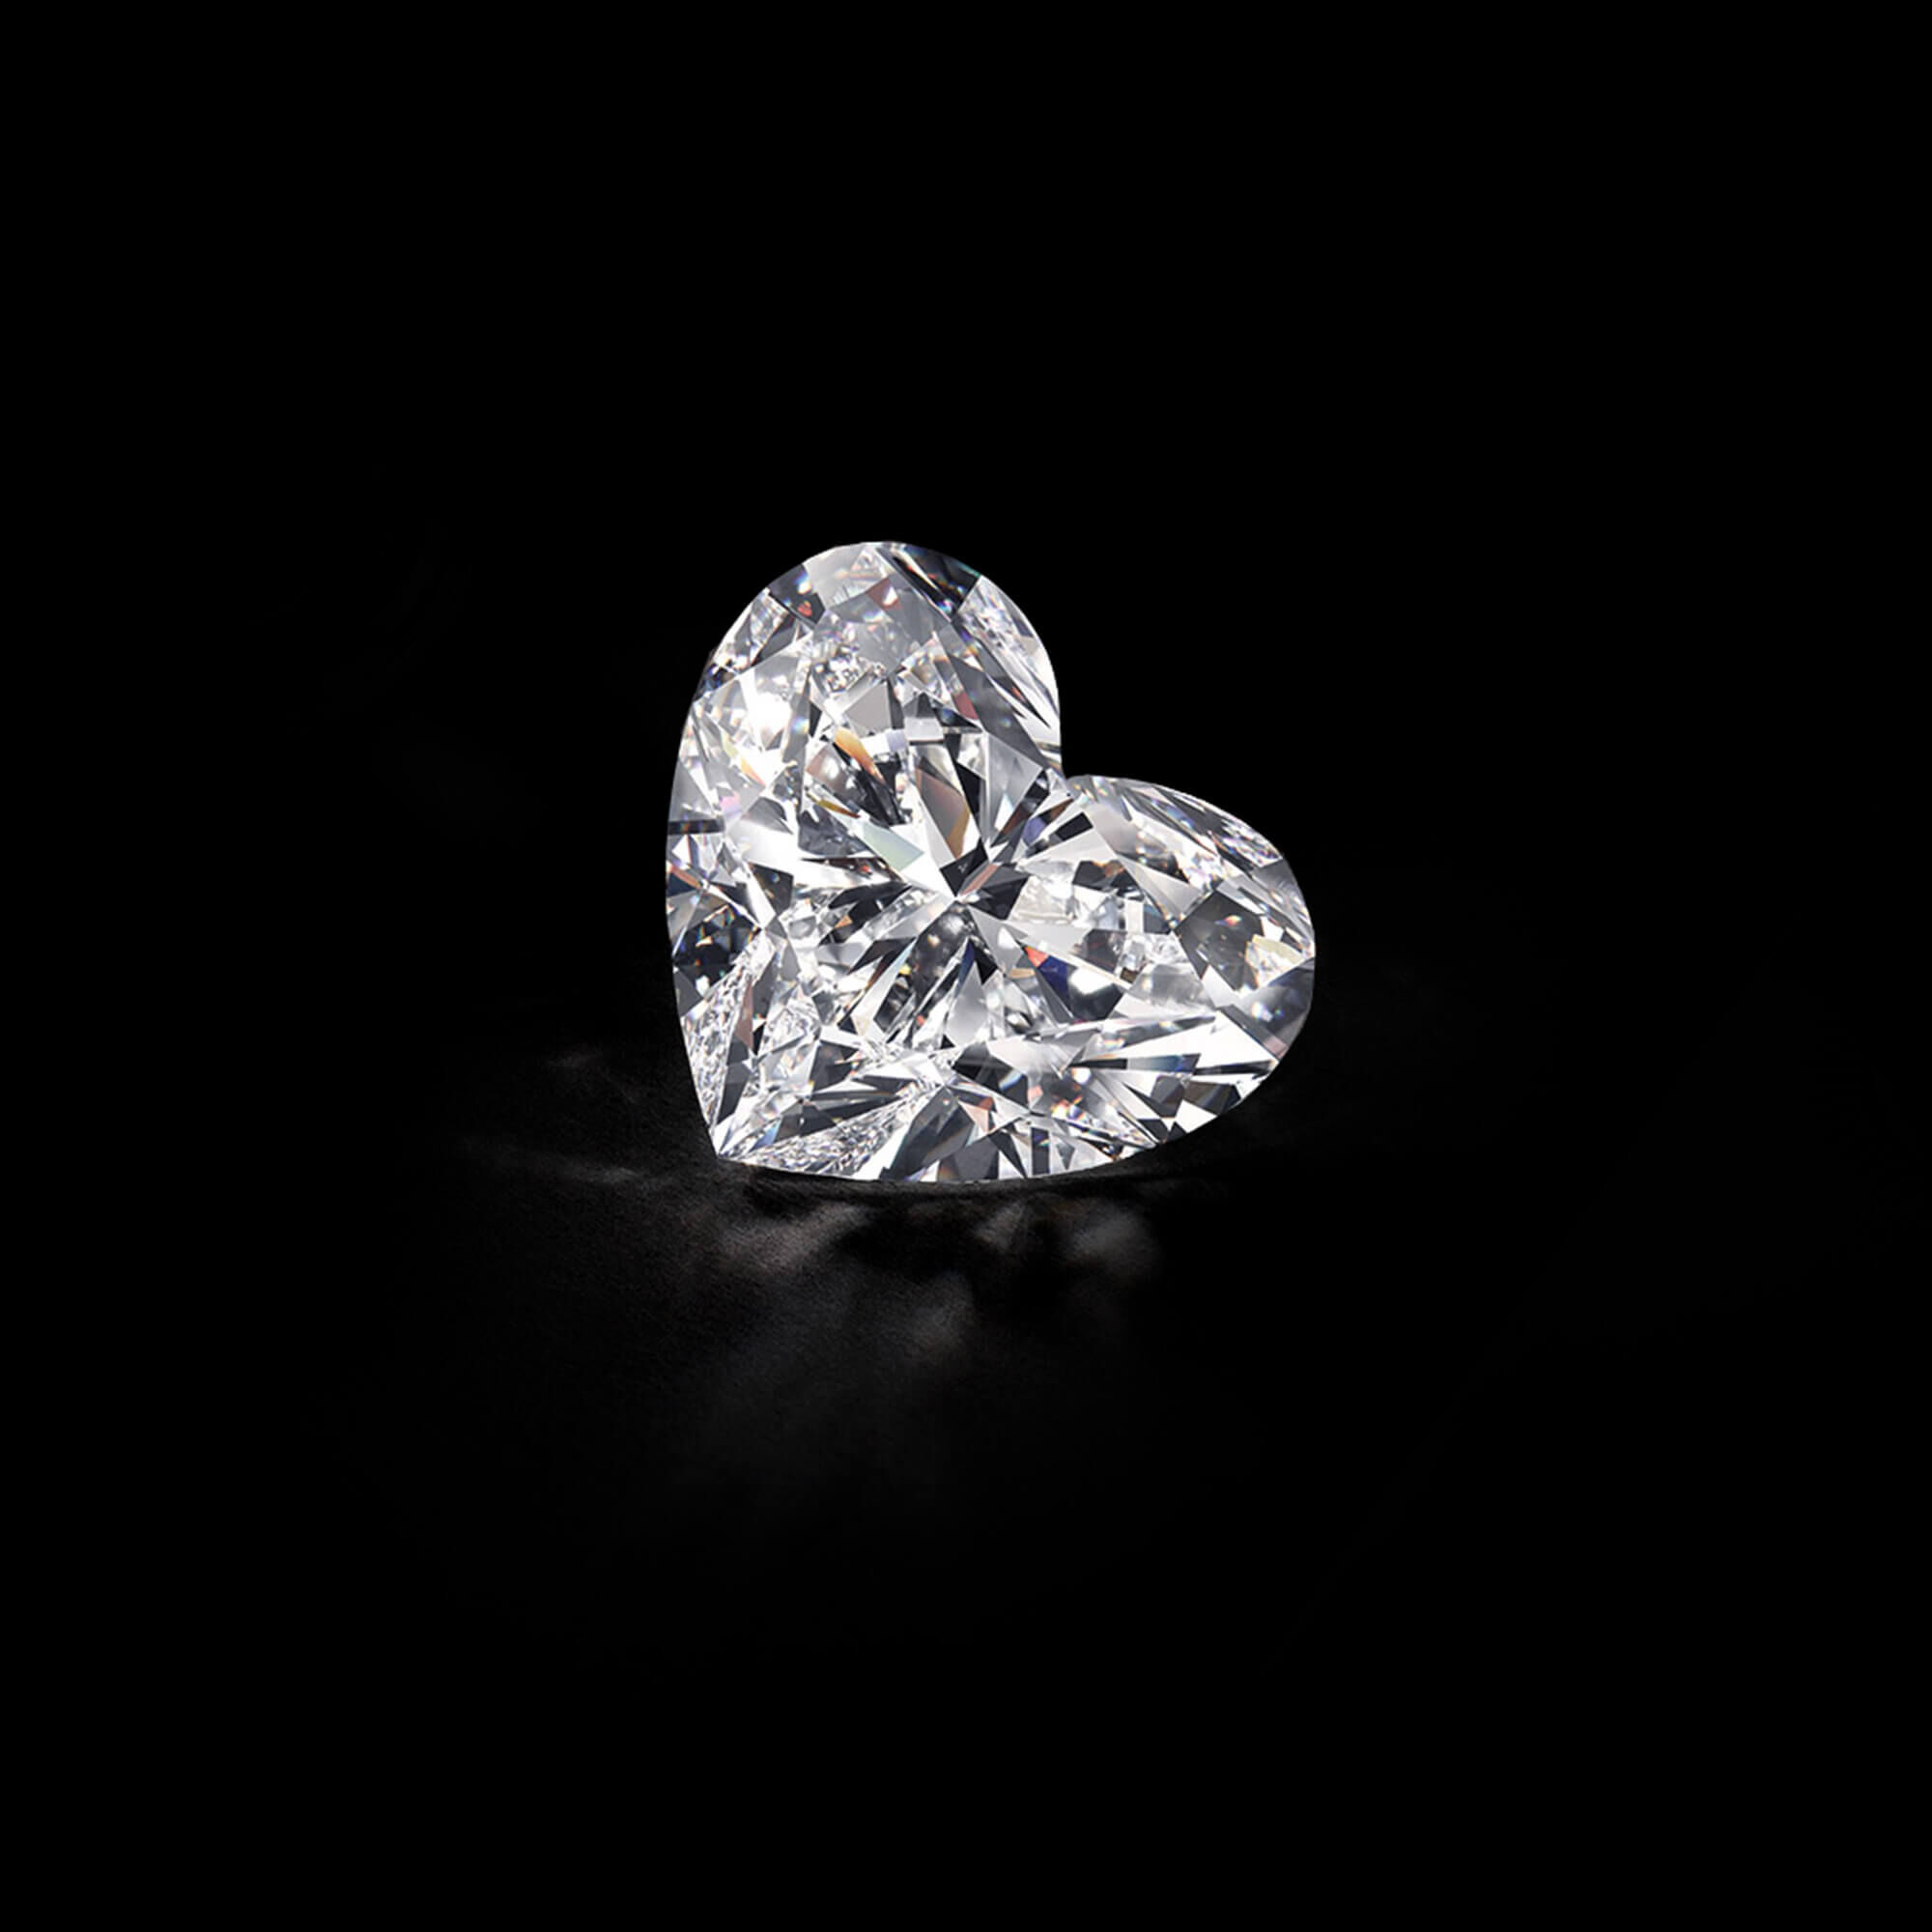 The Graff Venus, a 118.78 carat D Flawless heart shape diamond